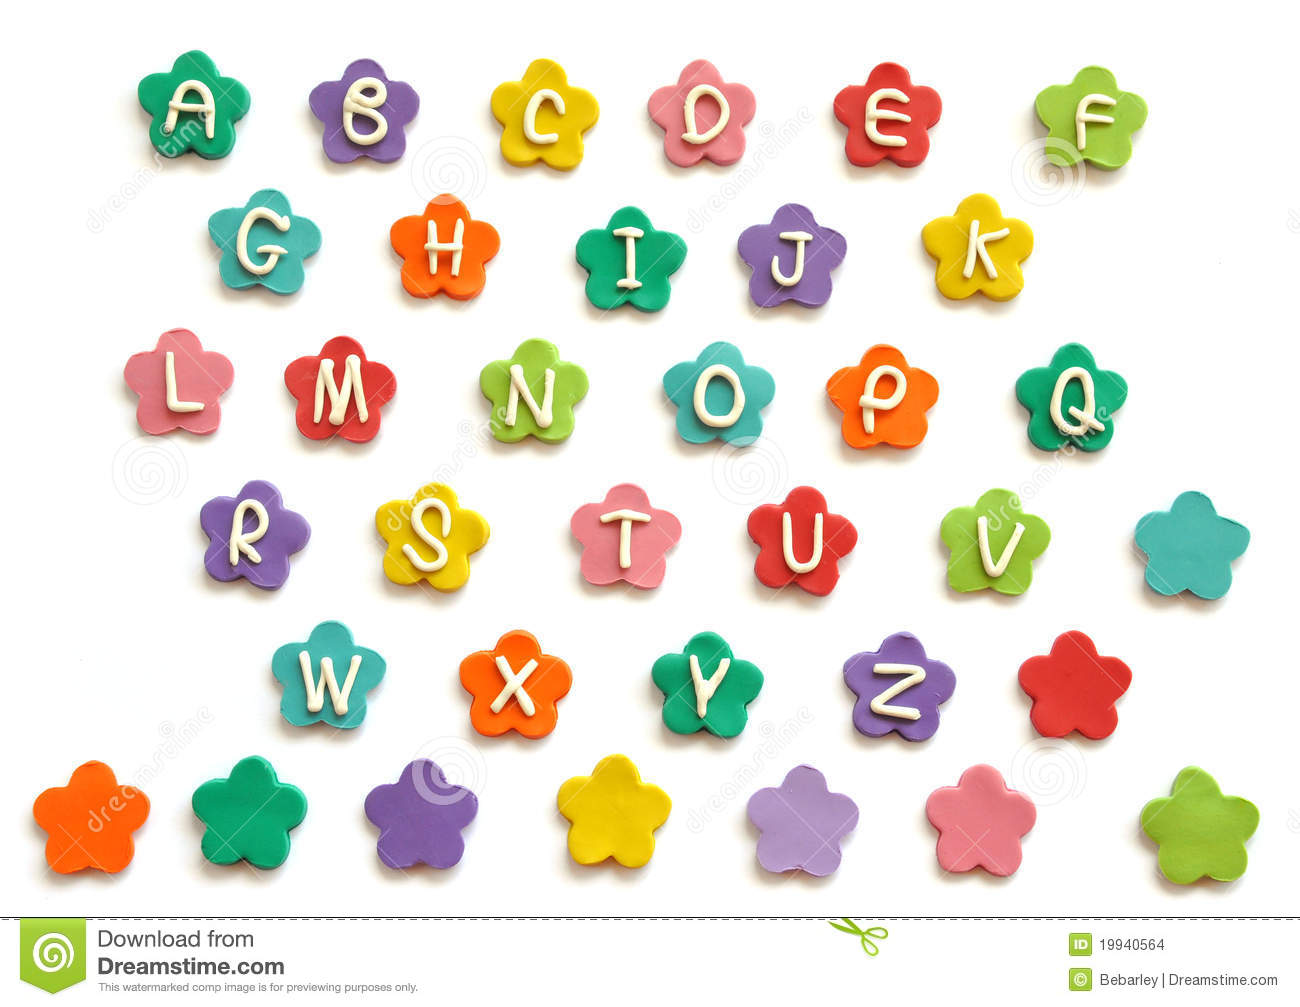 Plasticine cute alphabet stock photo image of color 19940564 plasticine cute alphabet altavistaventures Image collections